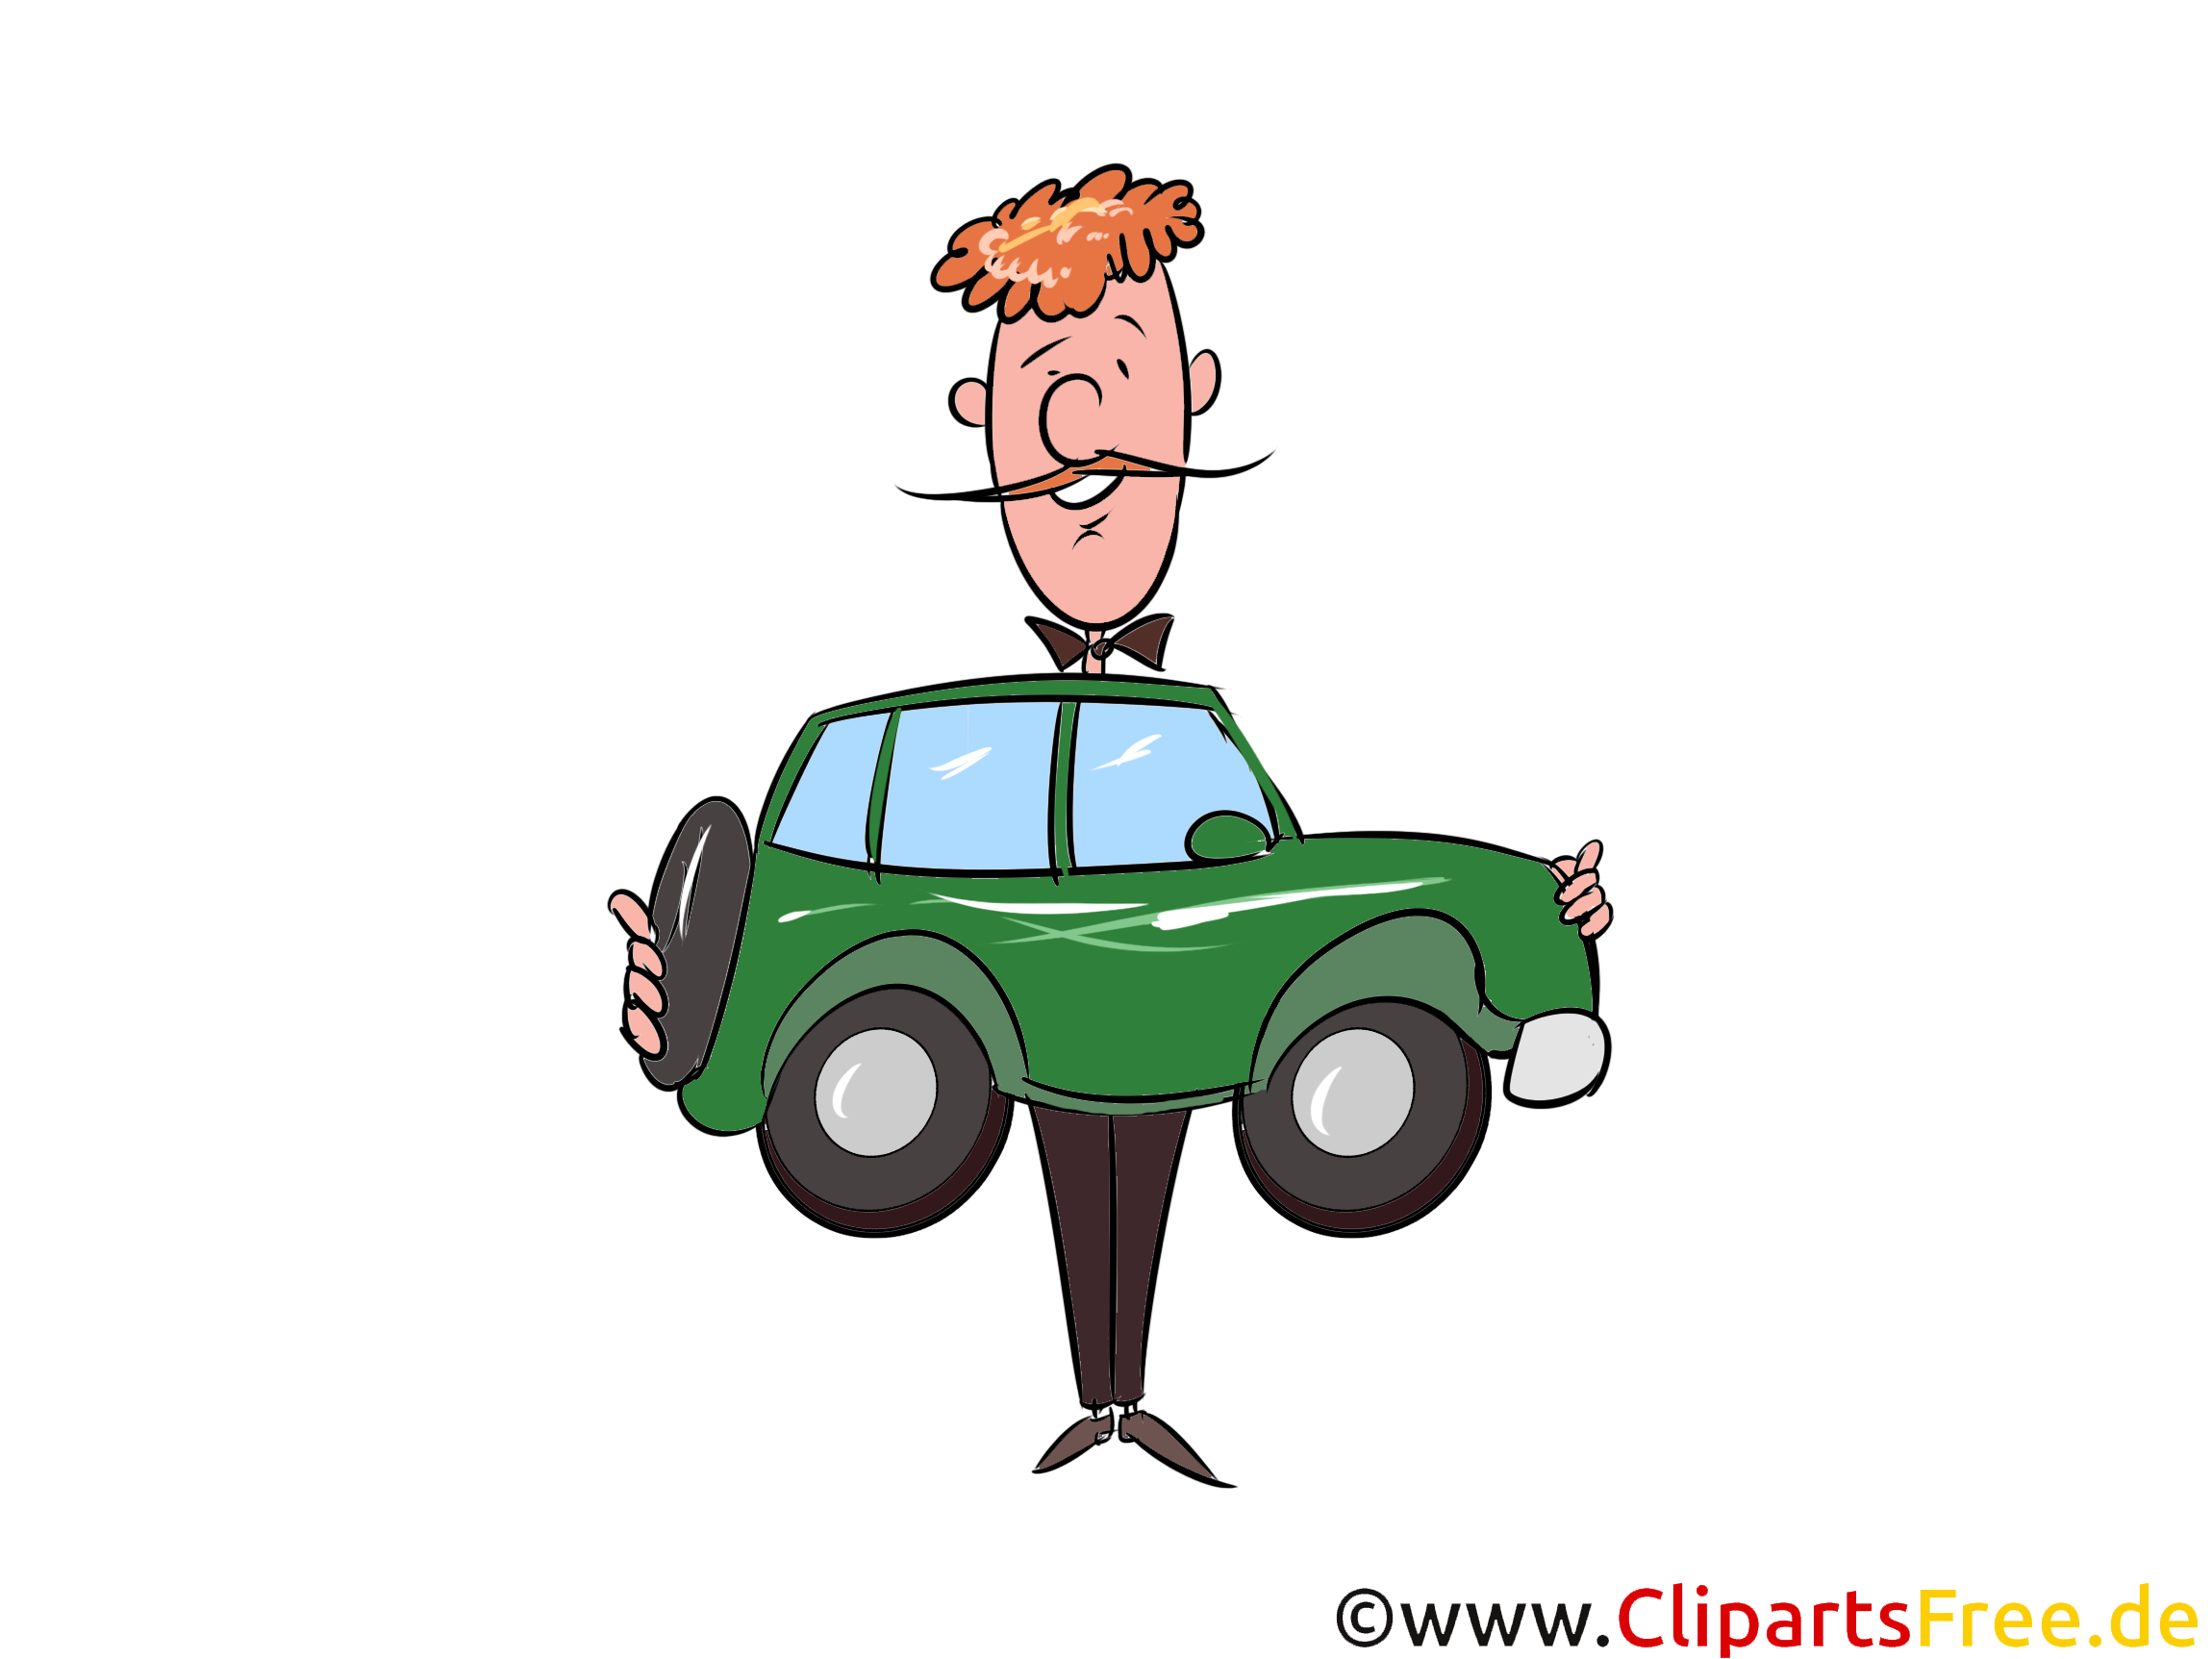 Leasing PKW Clipart, Bild, Grafik, Illustration